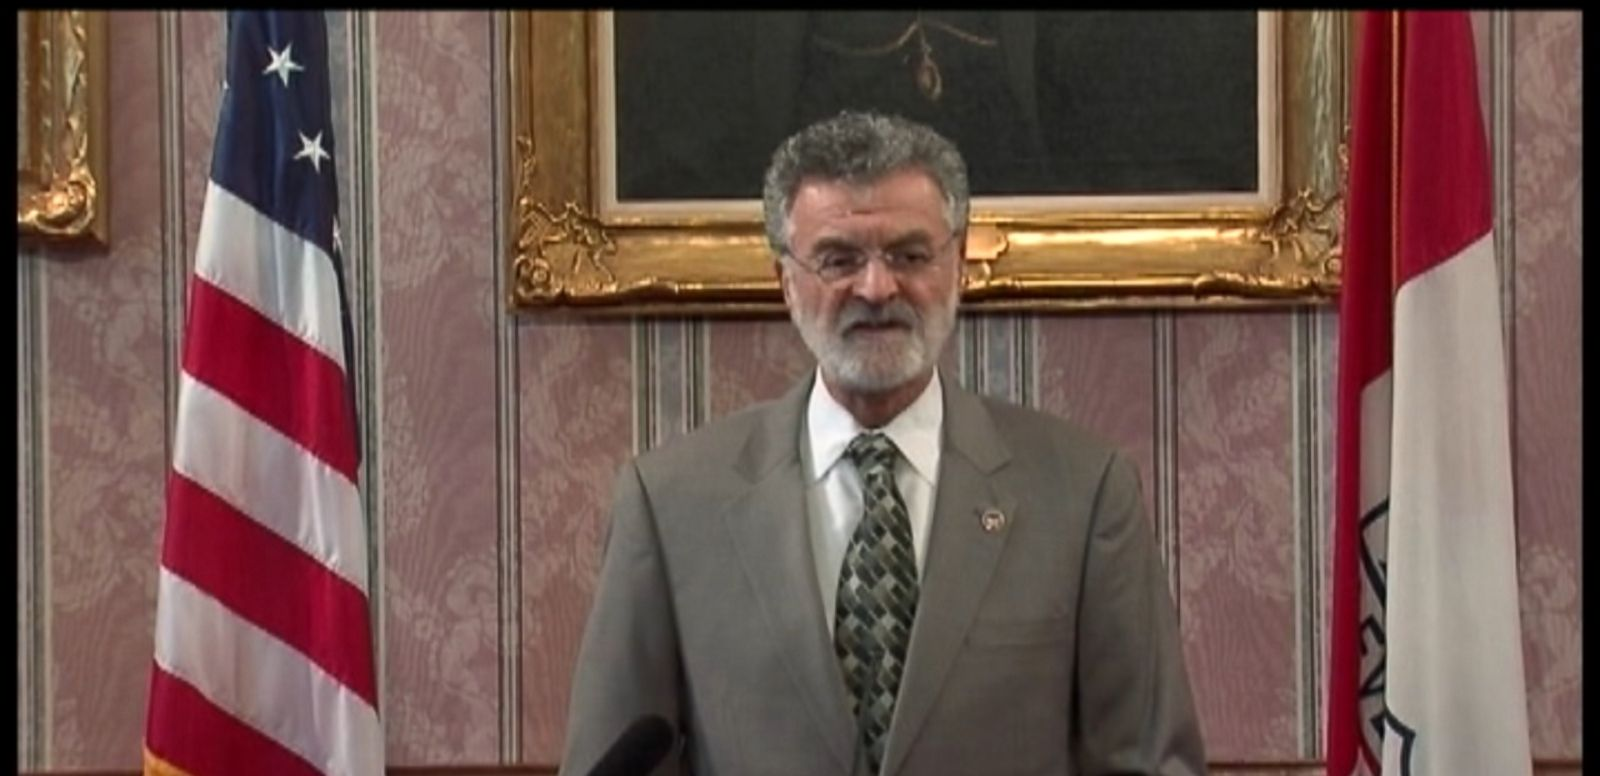 VIDEO: Mayor Frank Jackson apologized today for comments in court documents that suggested 12-year-old Tamir Rice was to blame for his own death.